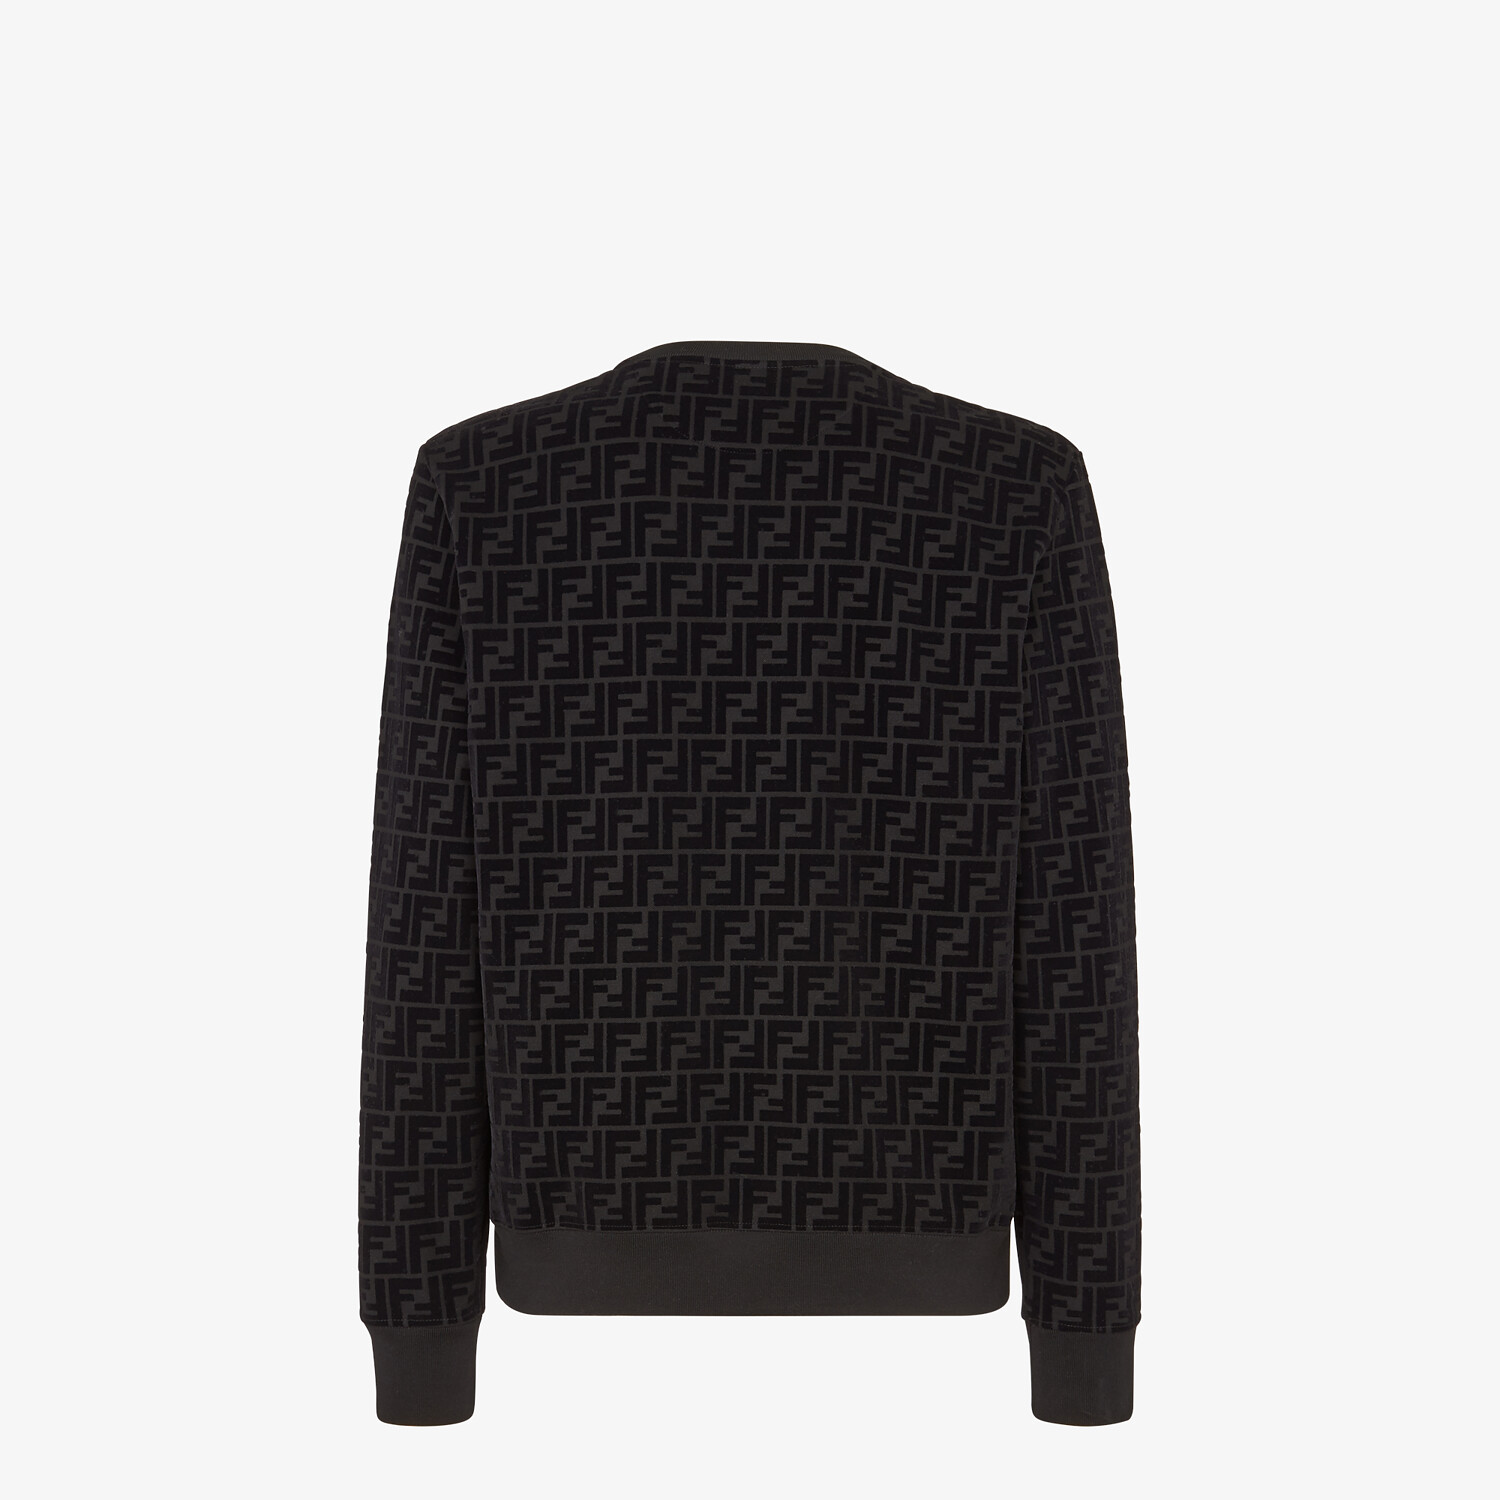 FENDI SWEATSHIRT - Black piqué sweatshirt - view 2 detail